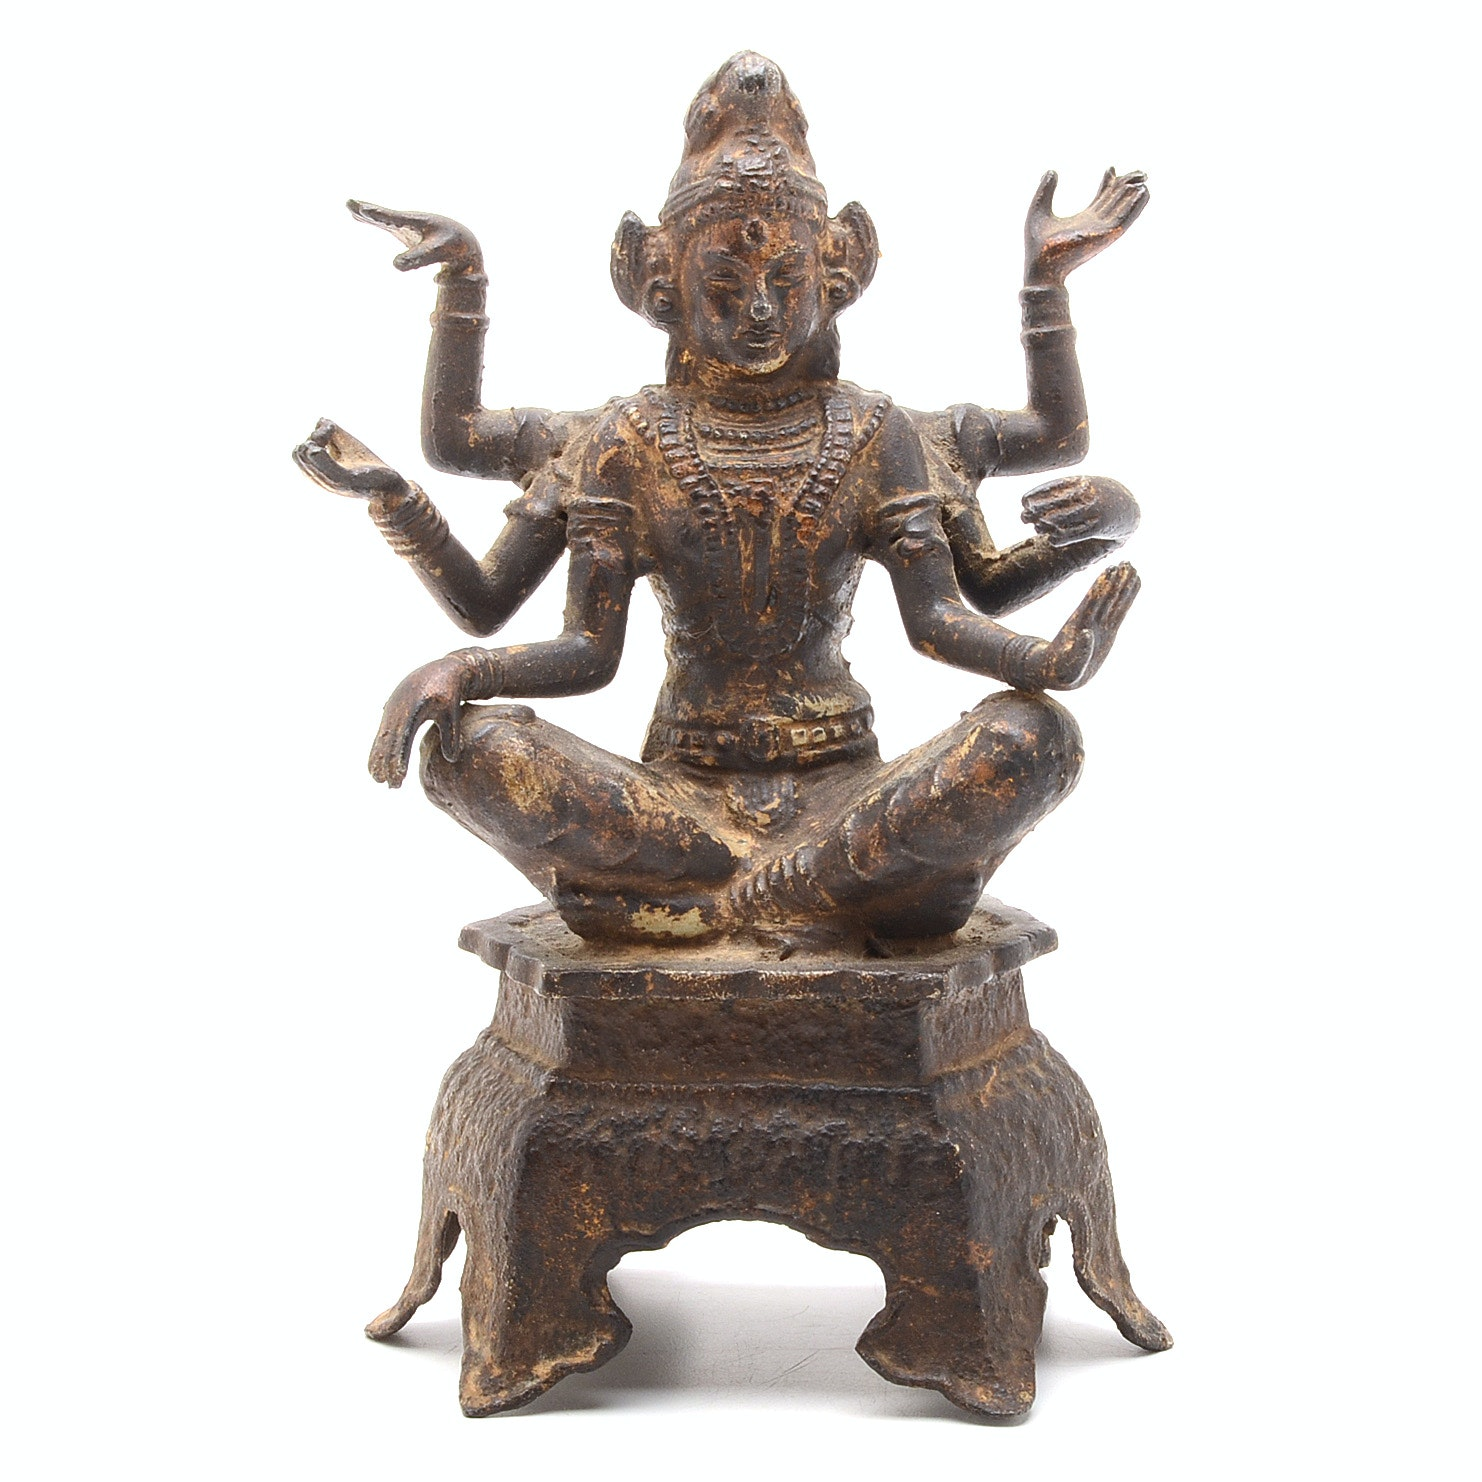 East Asian Seated Statue